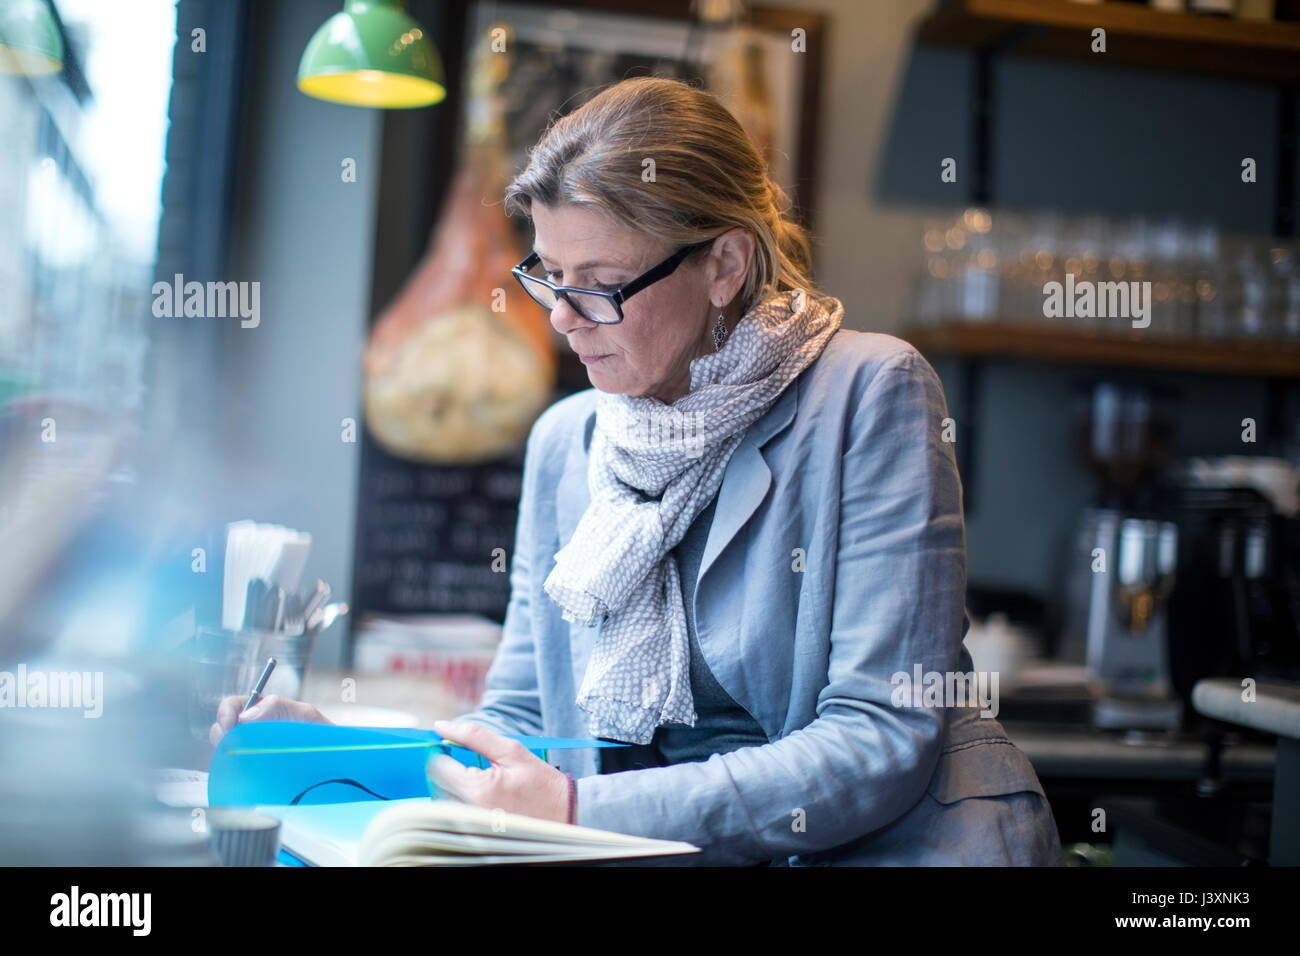 Mature businesswoman doing paperwork in restaurant Photo Stock